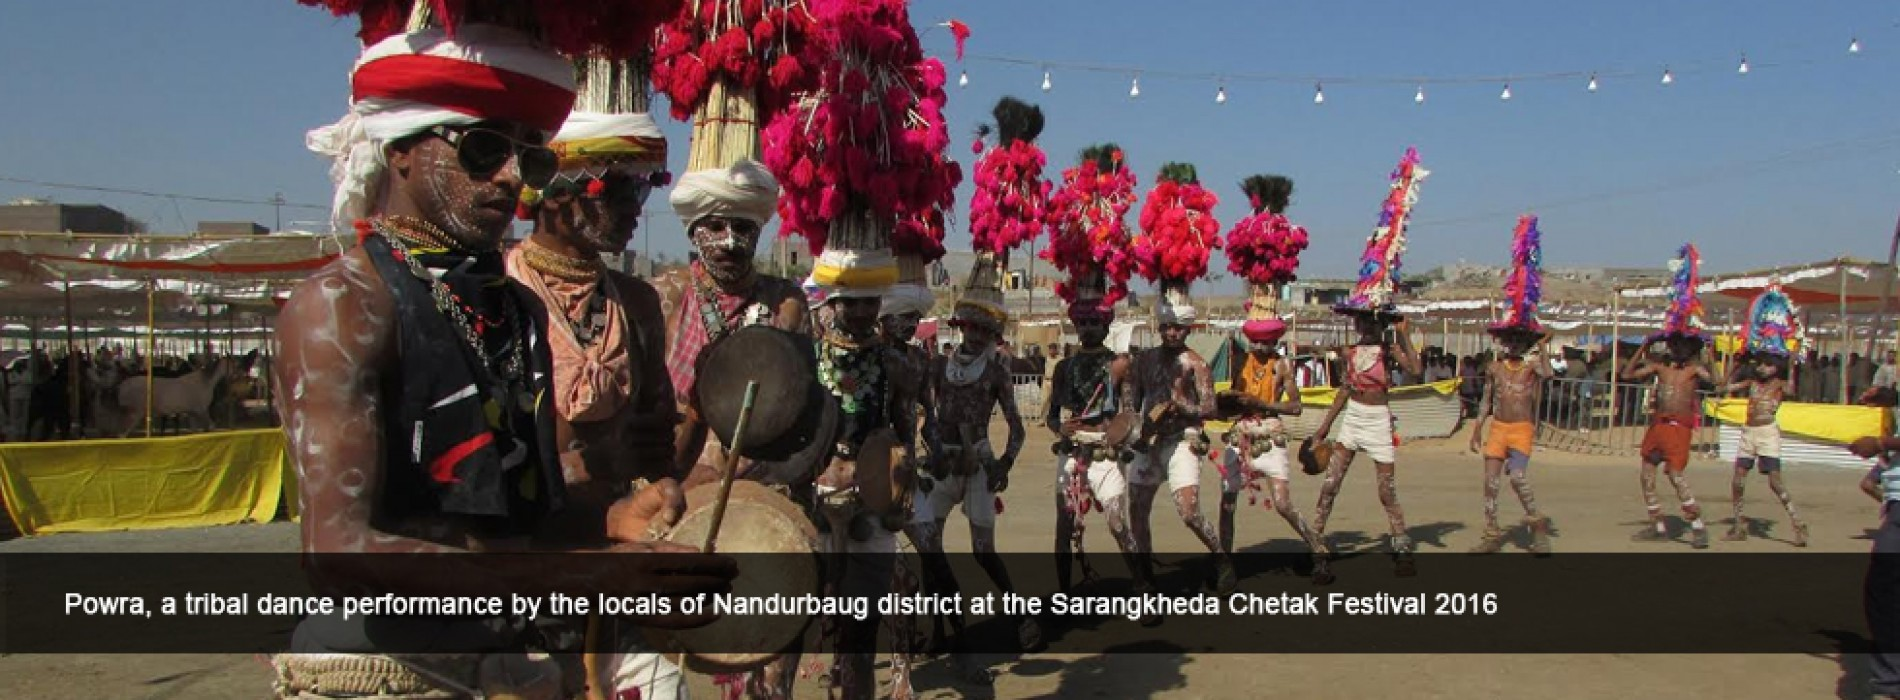 Colours came alive at the Sarangkheda Chetak Festival 2016